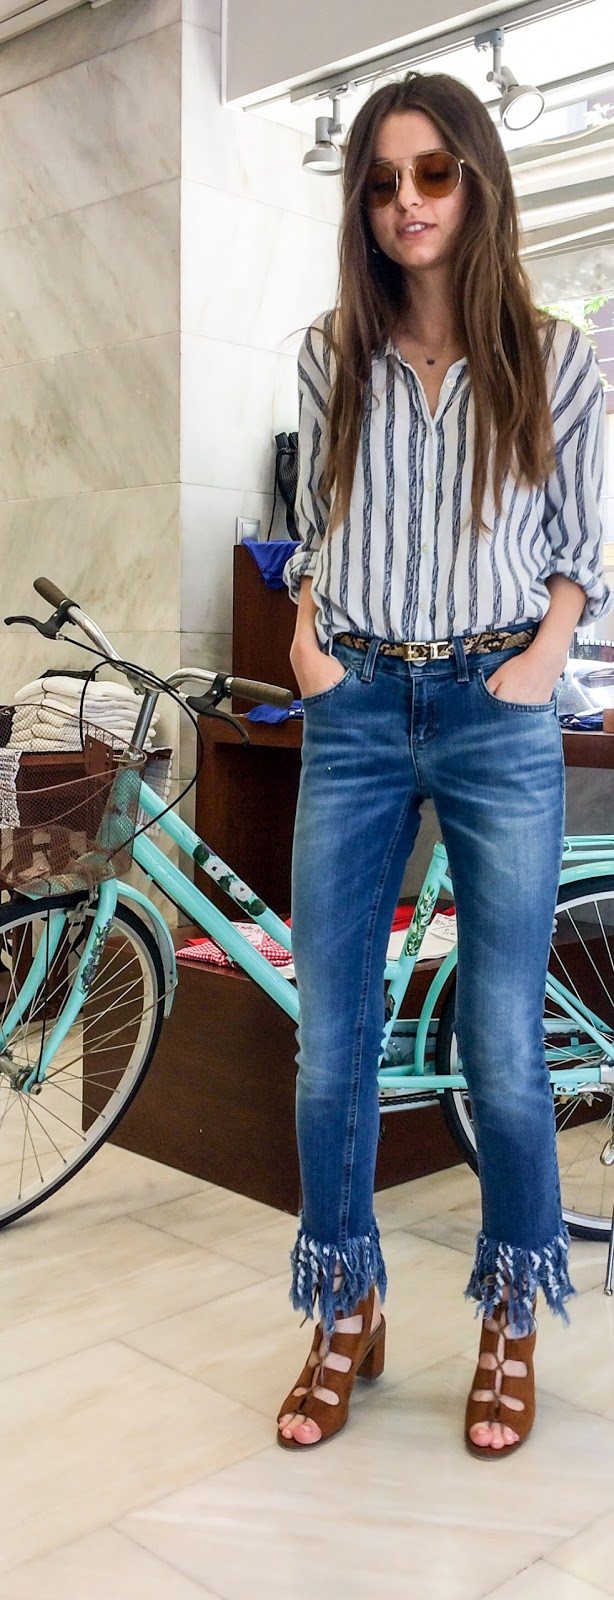 denim shirt stripes fringes rinascimento kaffe